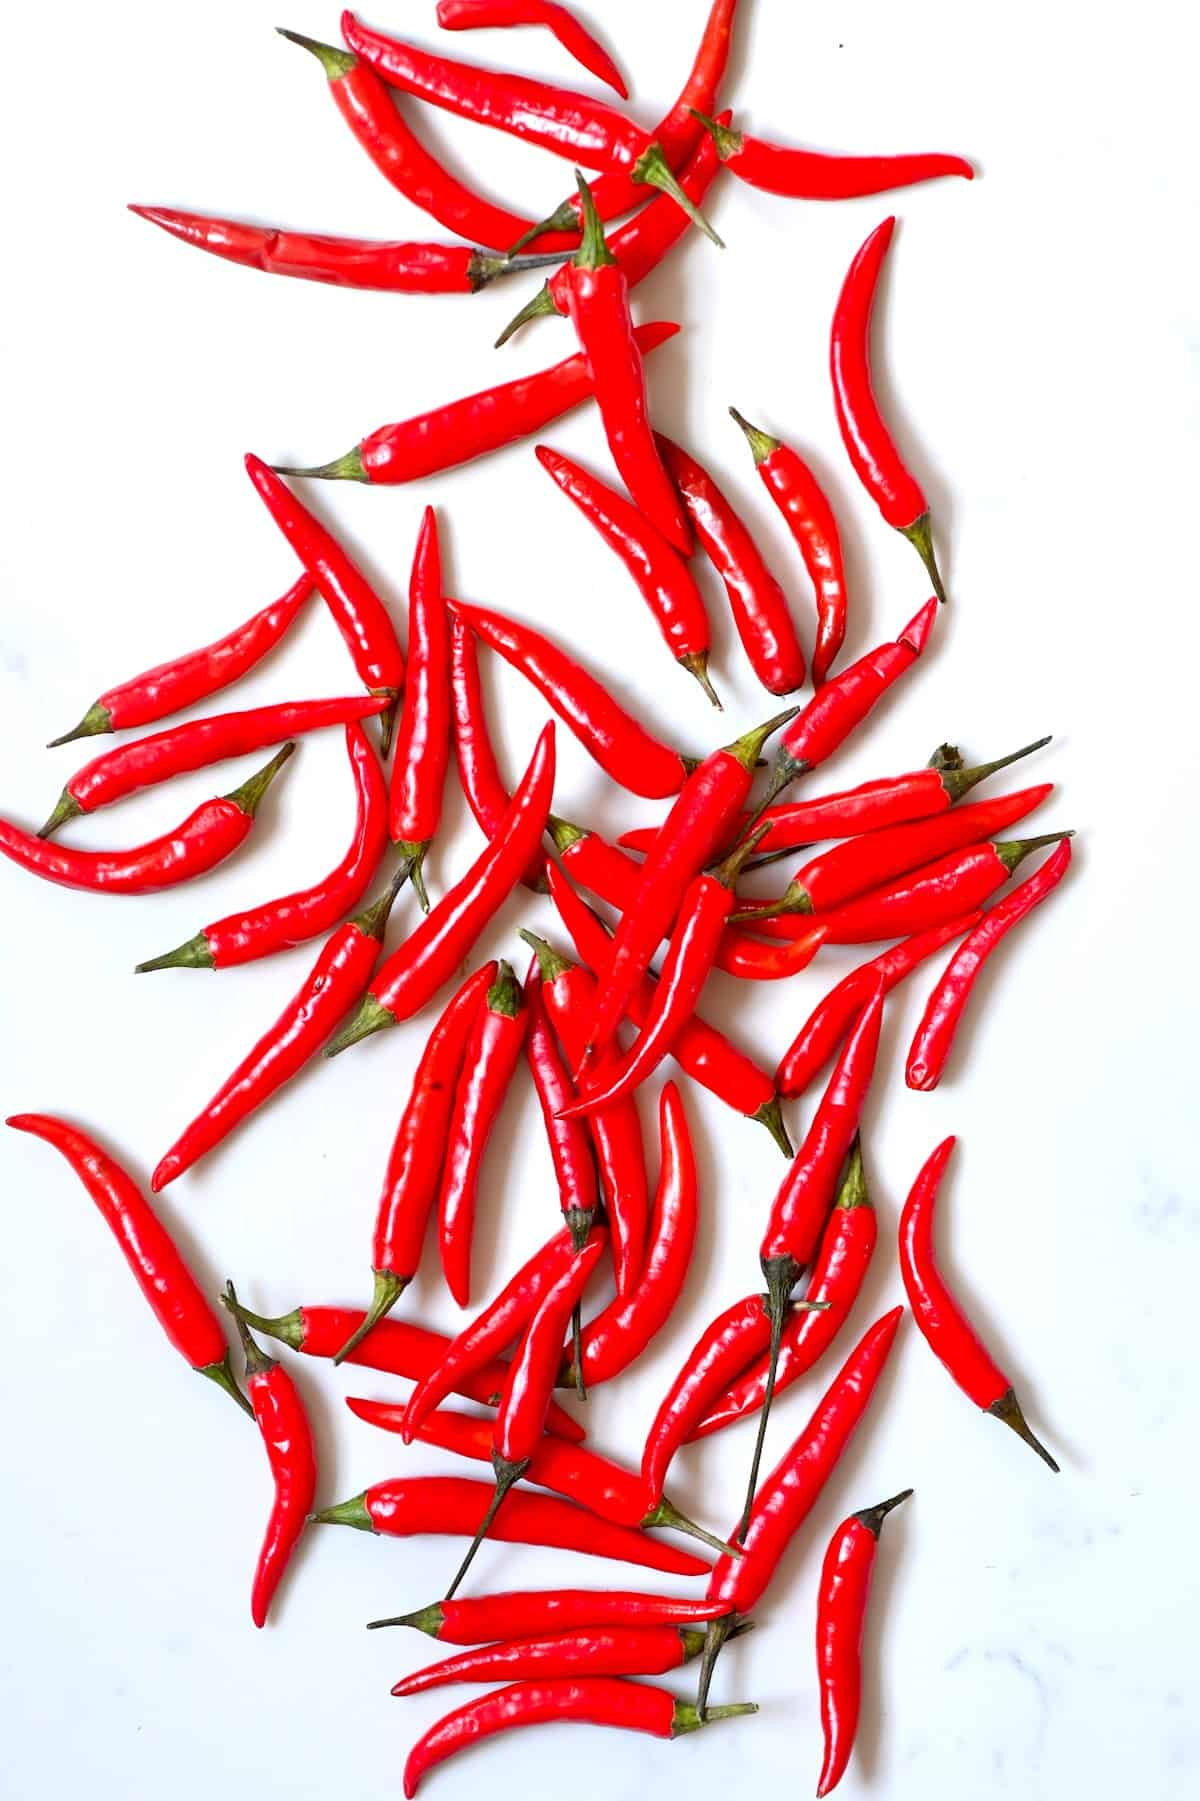 Red chili peppers on a white surface